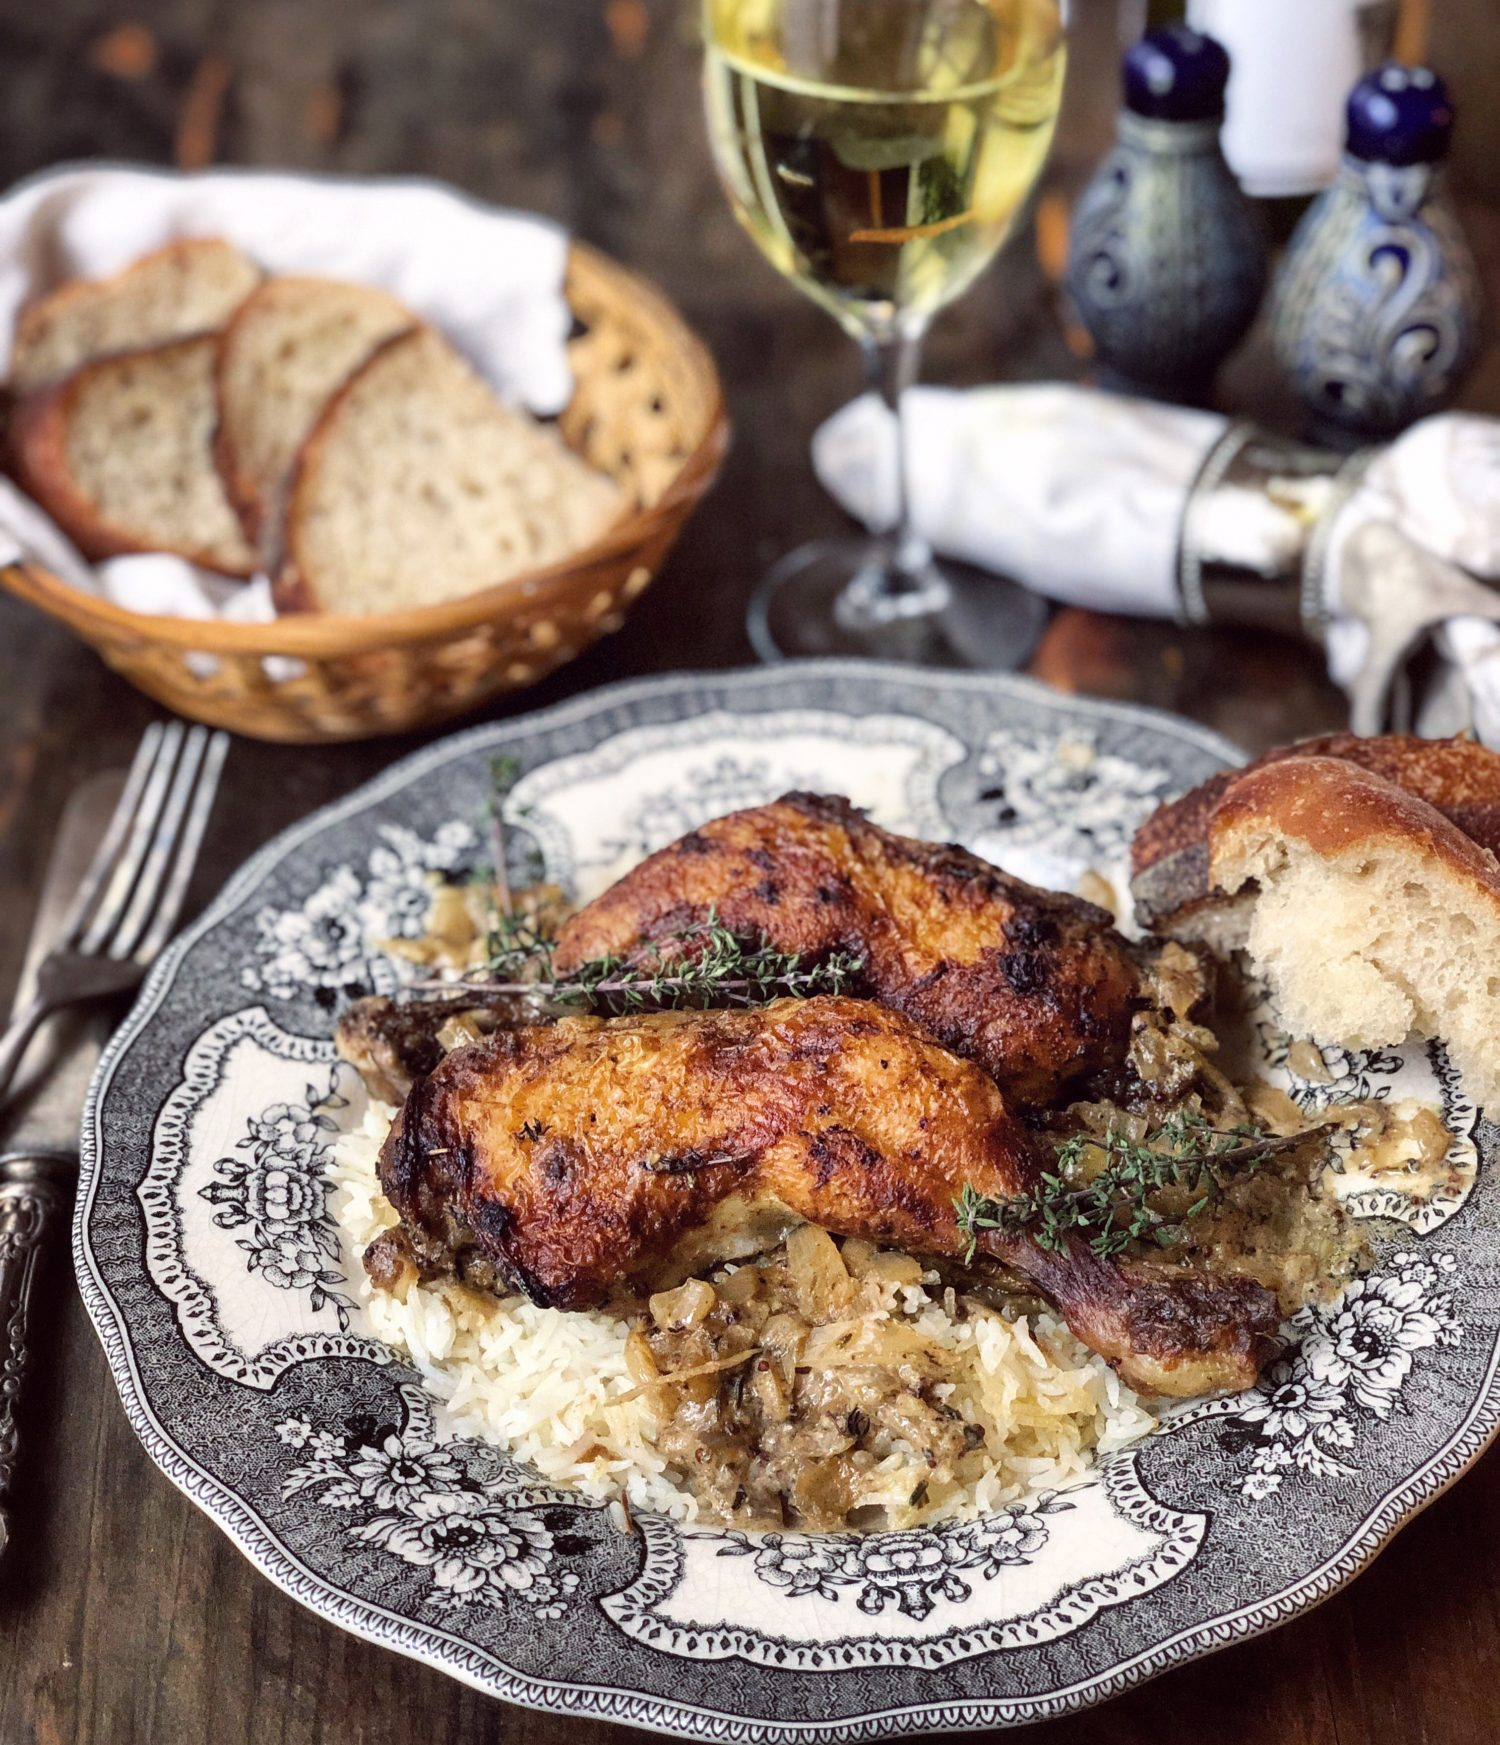 Juicy chicken a la moutarde, wine and mustard sauce